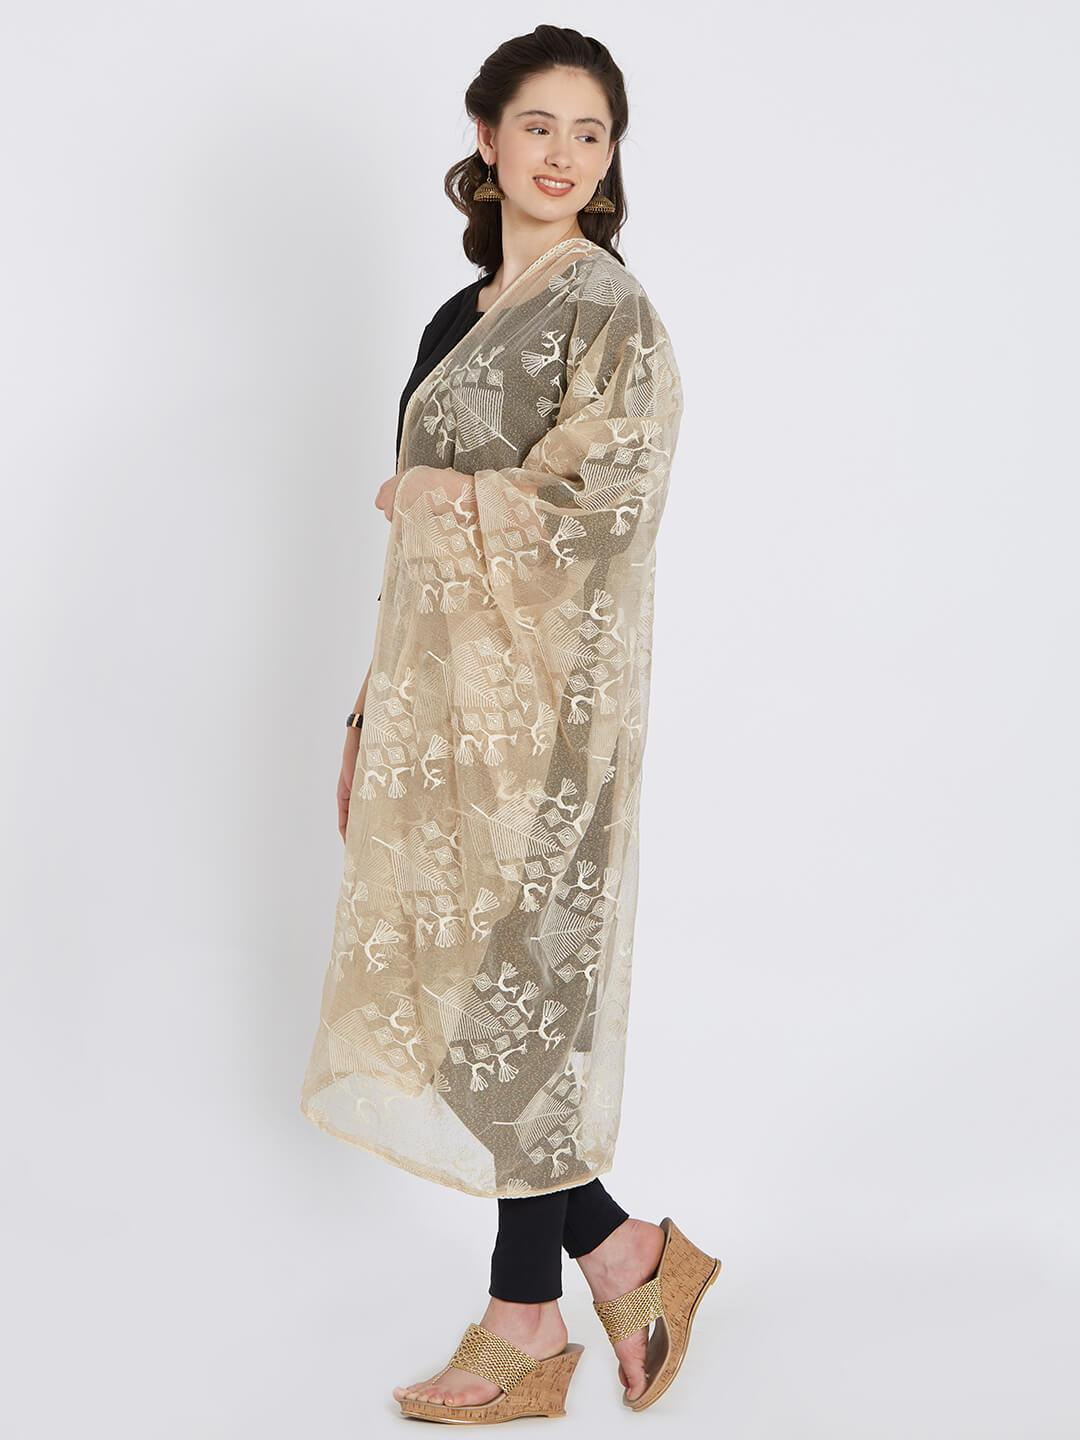 CraftsCollection.in - Beige Jute Dupatta with Tribal motifs